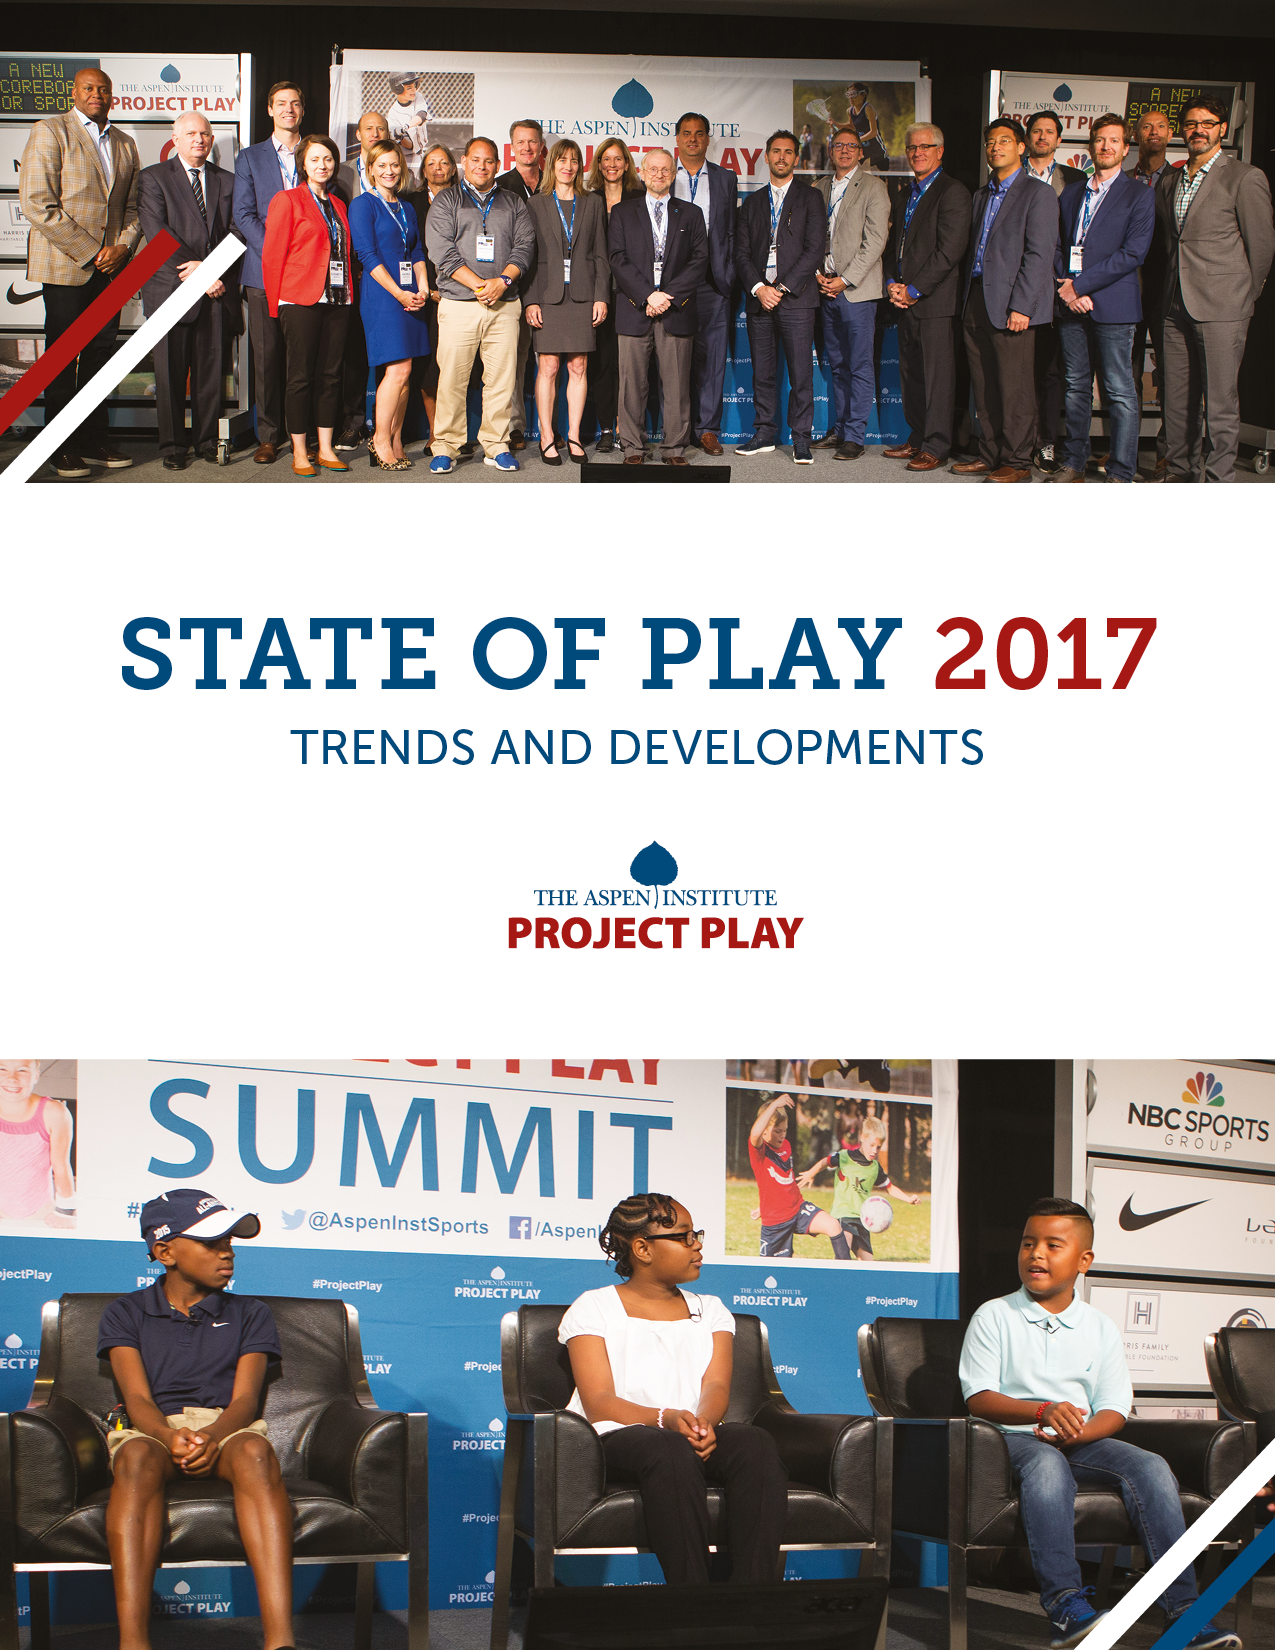 State of Play: 2017